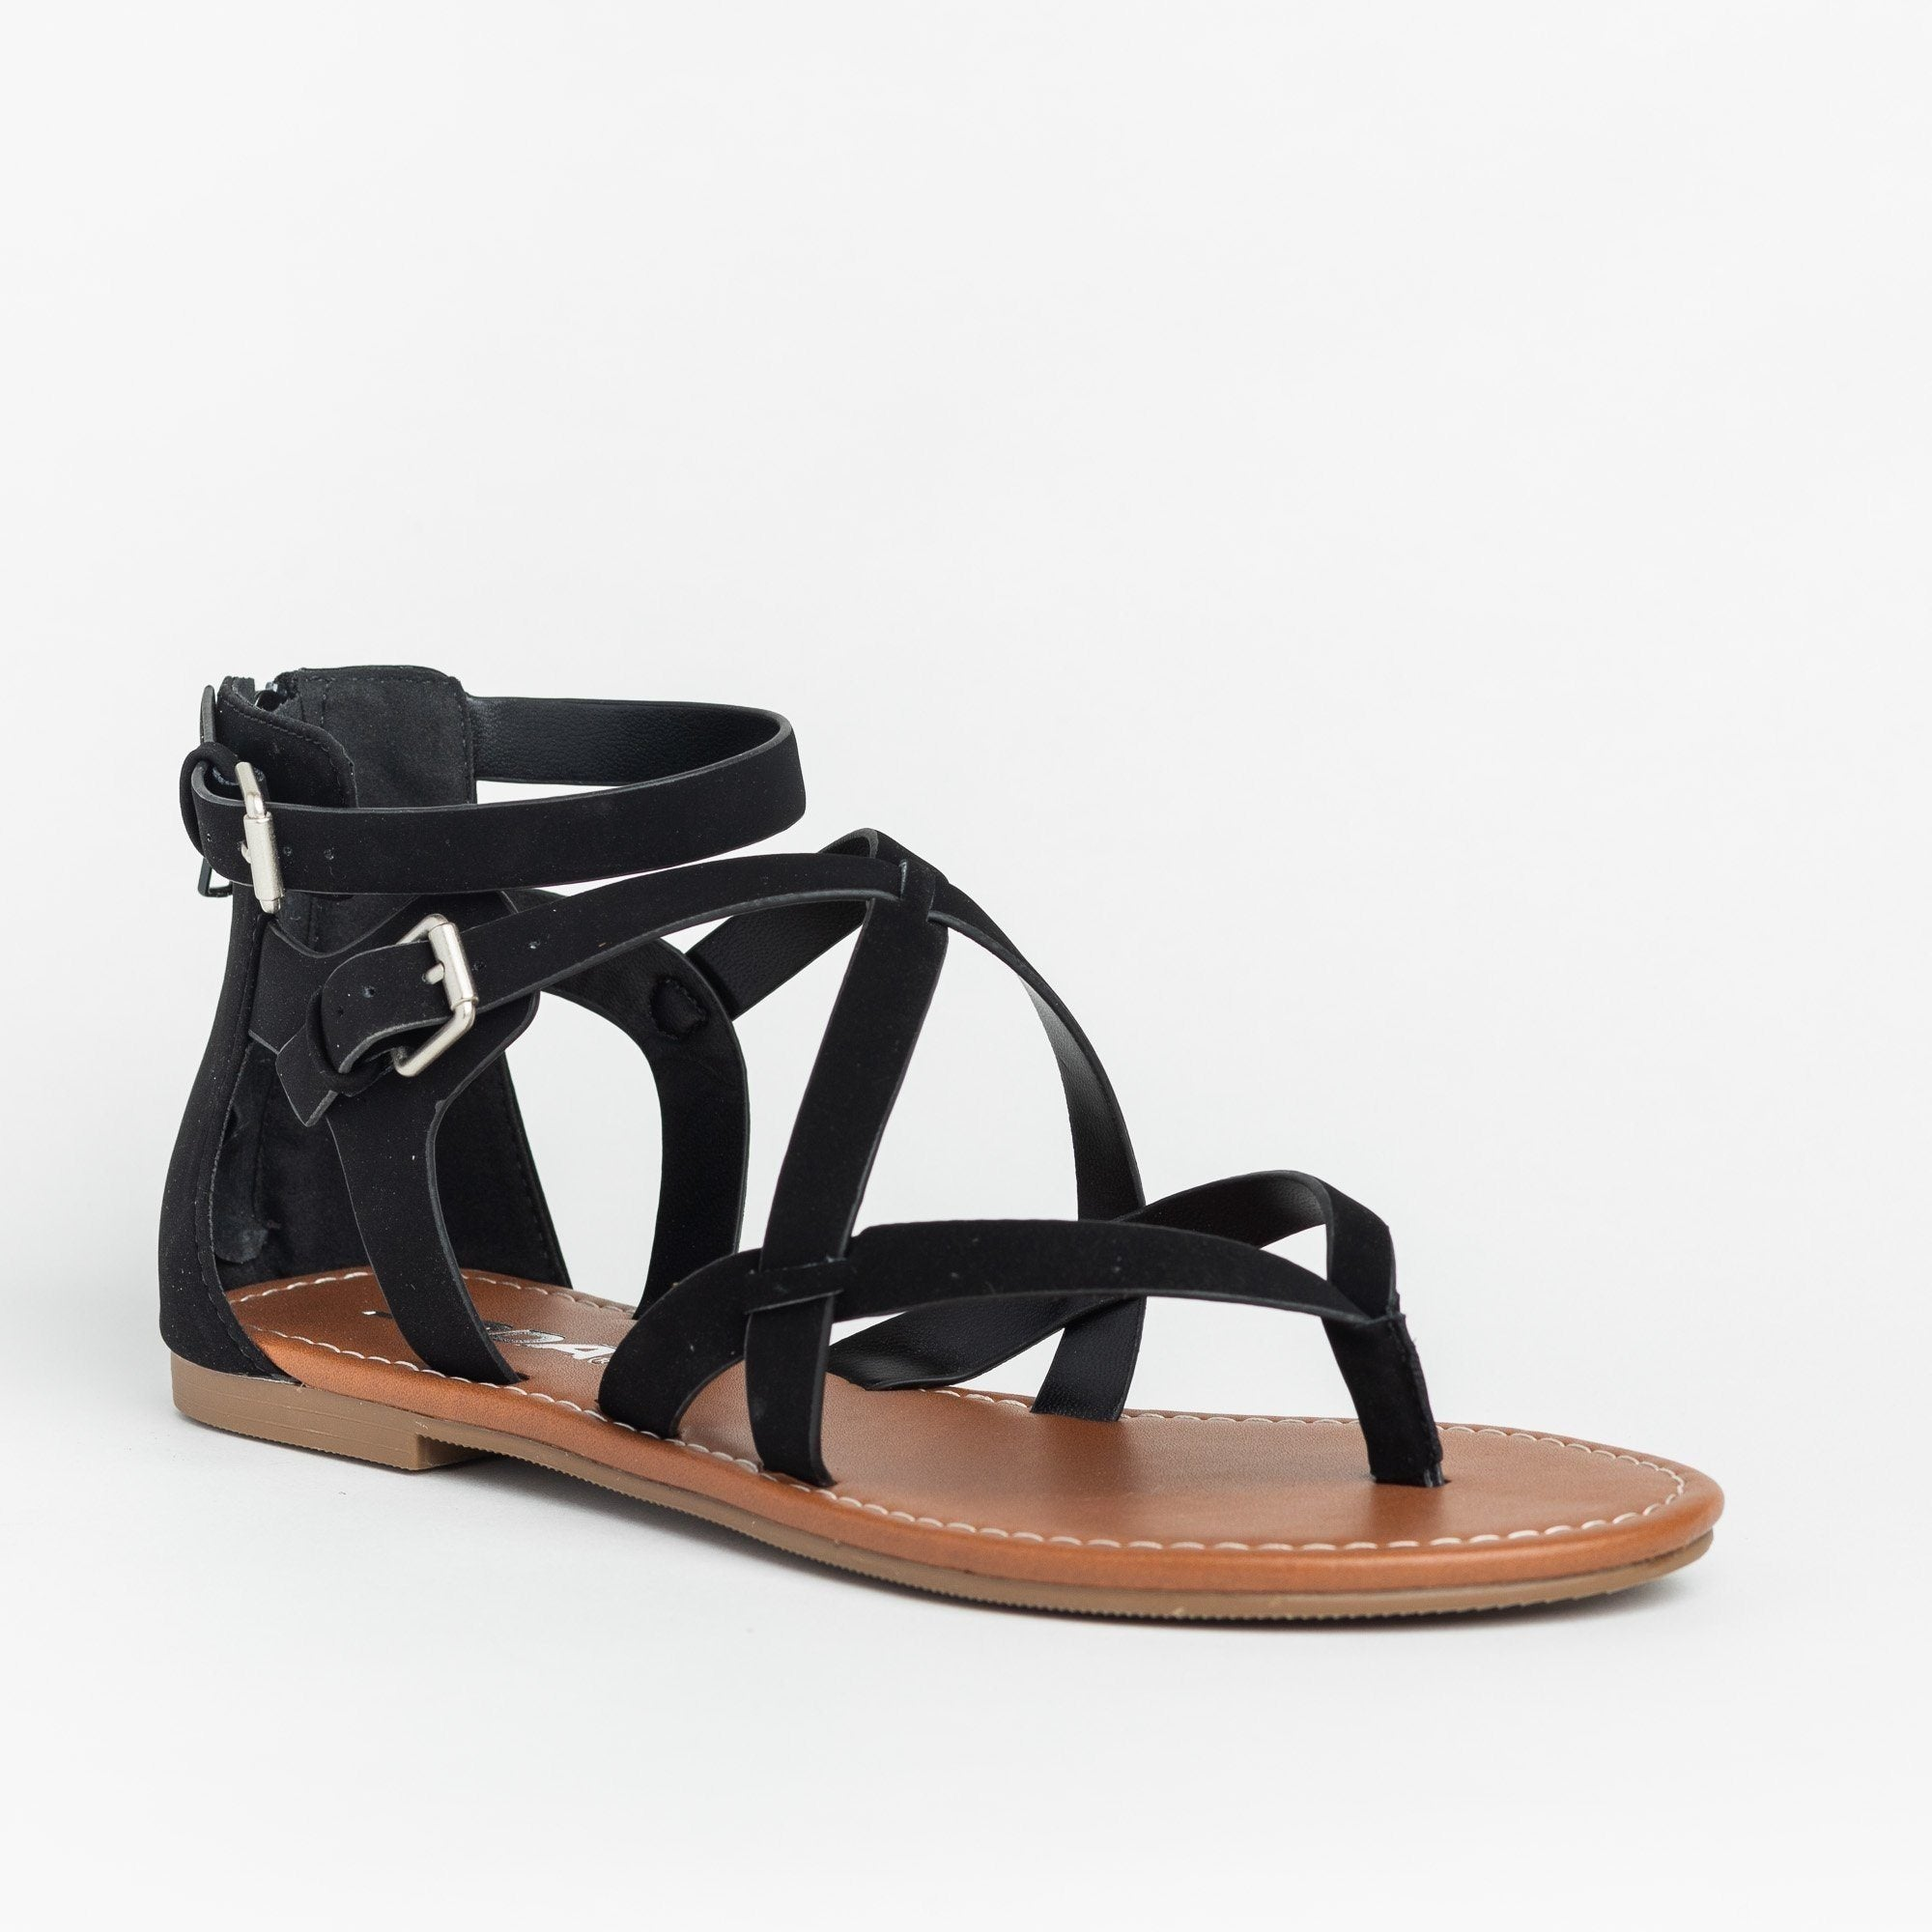 92811aac85955 Strappy Criss Cross Gladiator-Style Sandals - Soda Shoes Perfect-S ...